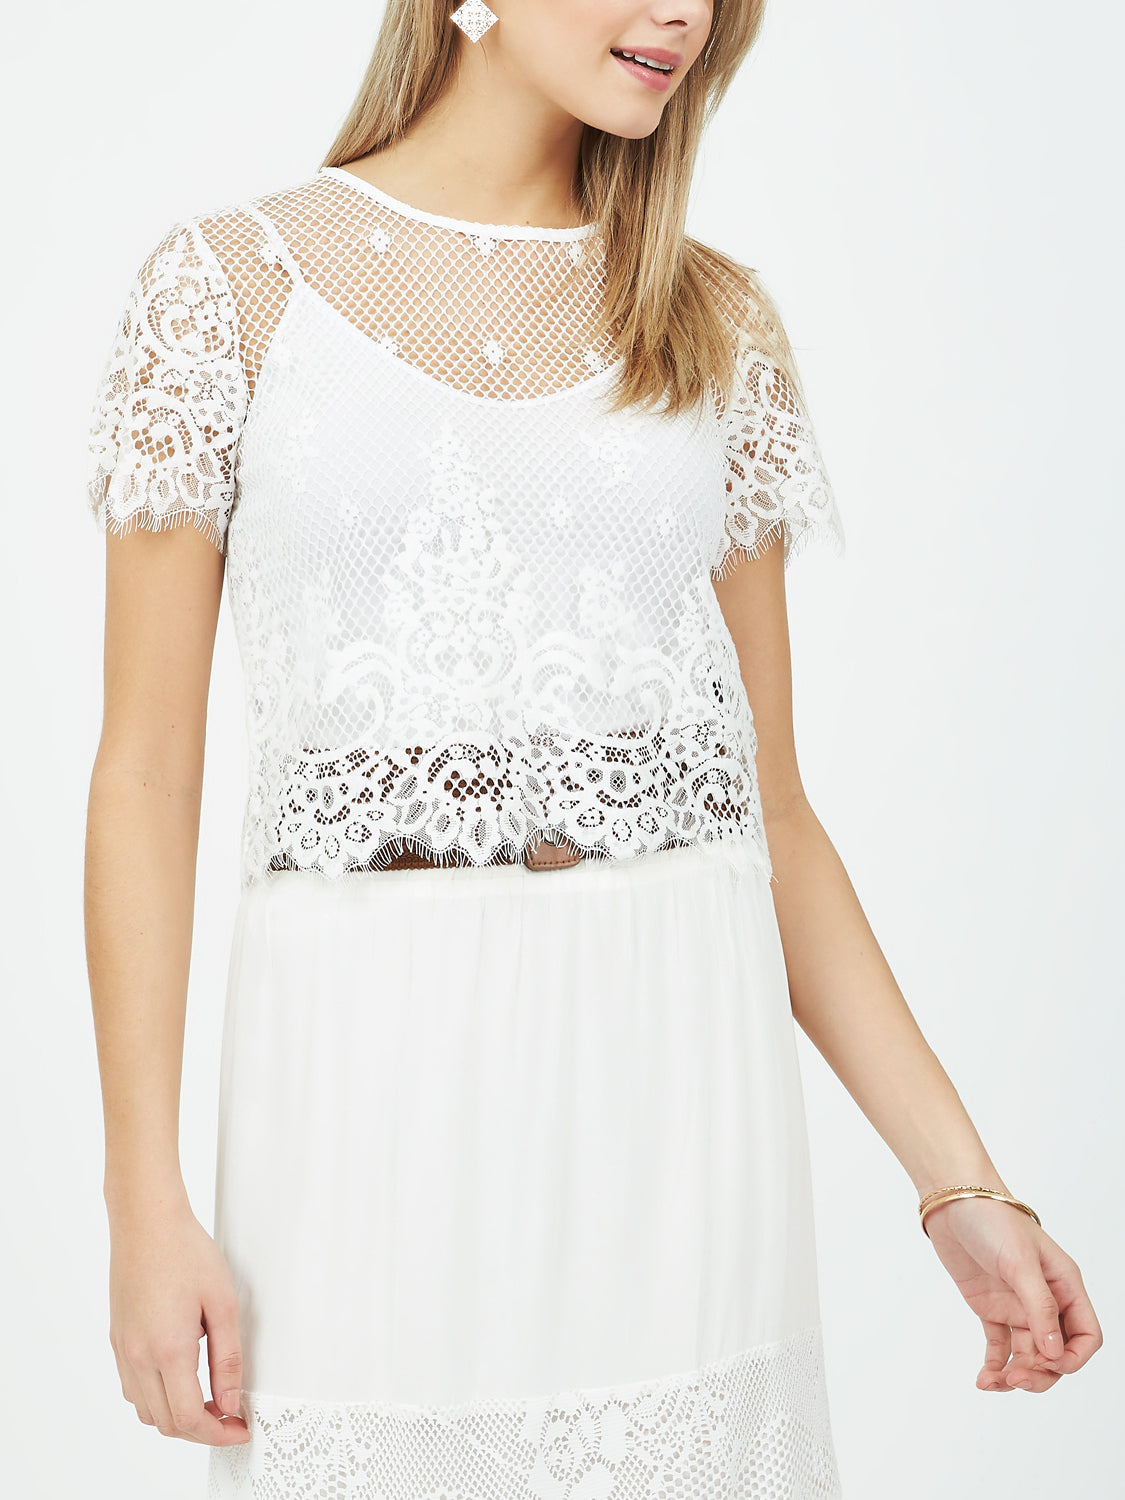 Fishnet Scalloped Lace T-Shirt